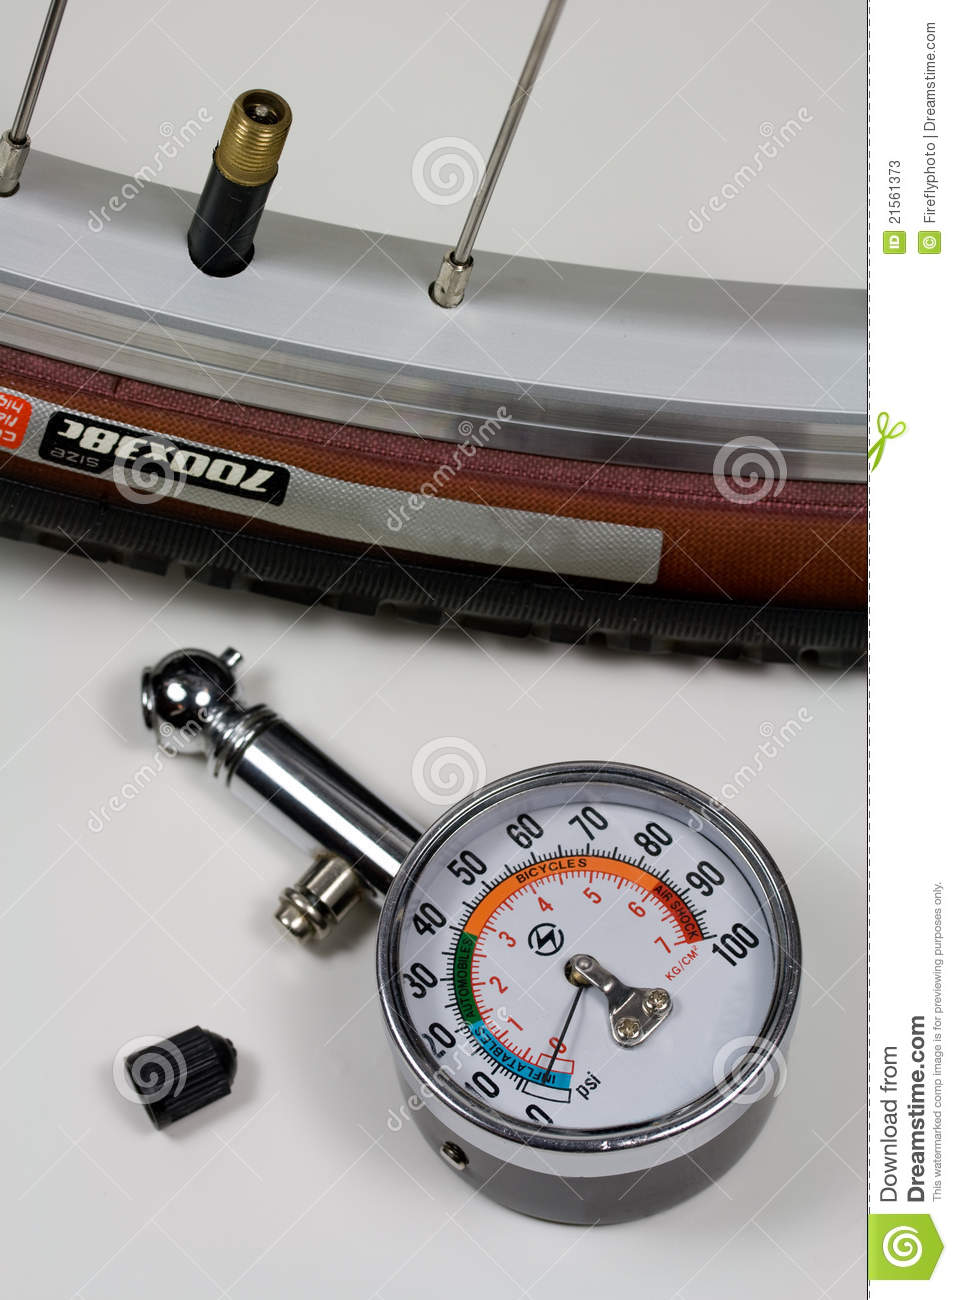 air pressure gauge and bicycle tire stock image image 21561373. Black Bedroom Furniture Sets. Home Design Ideas